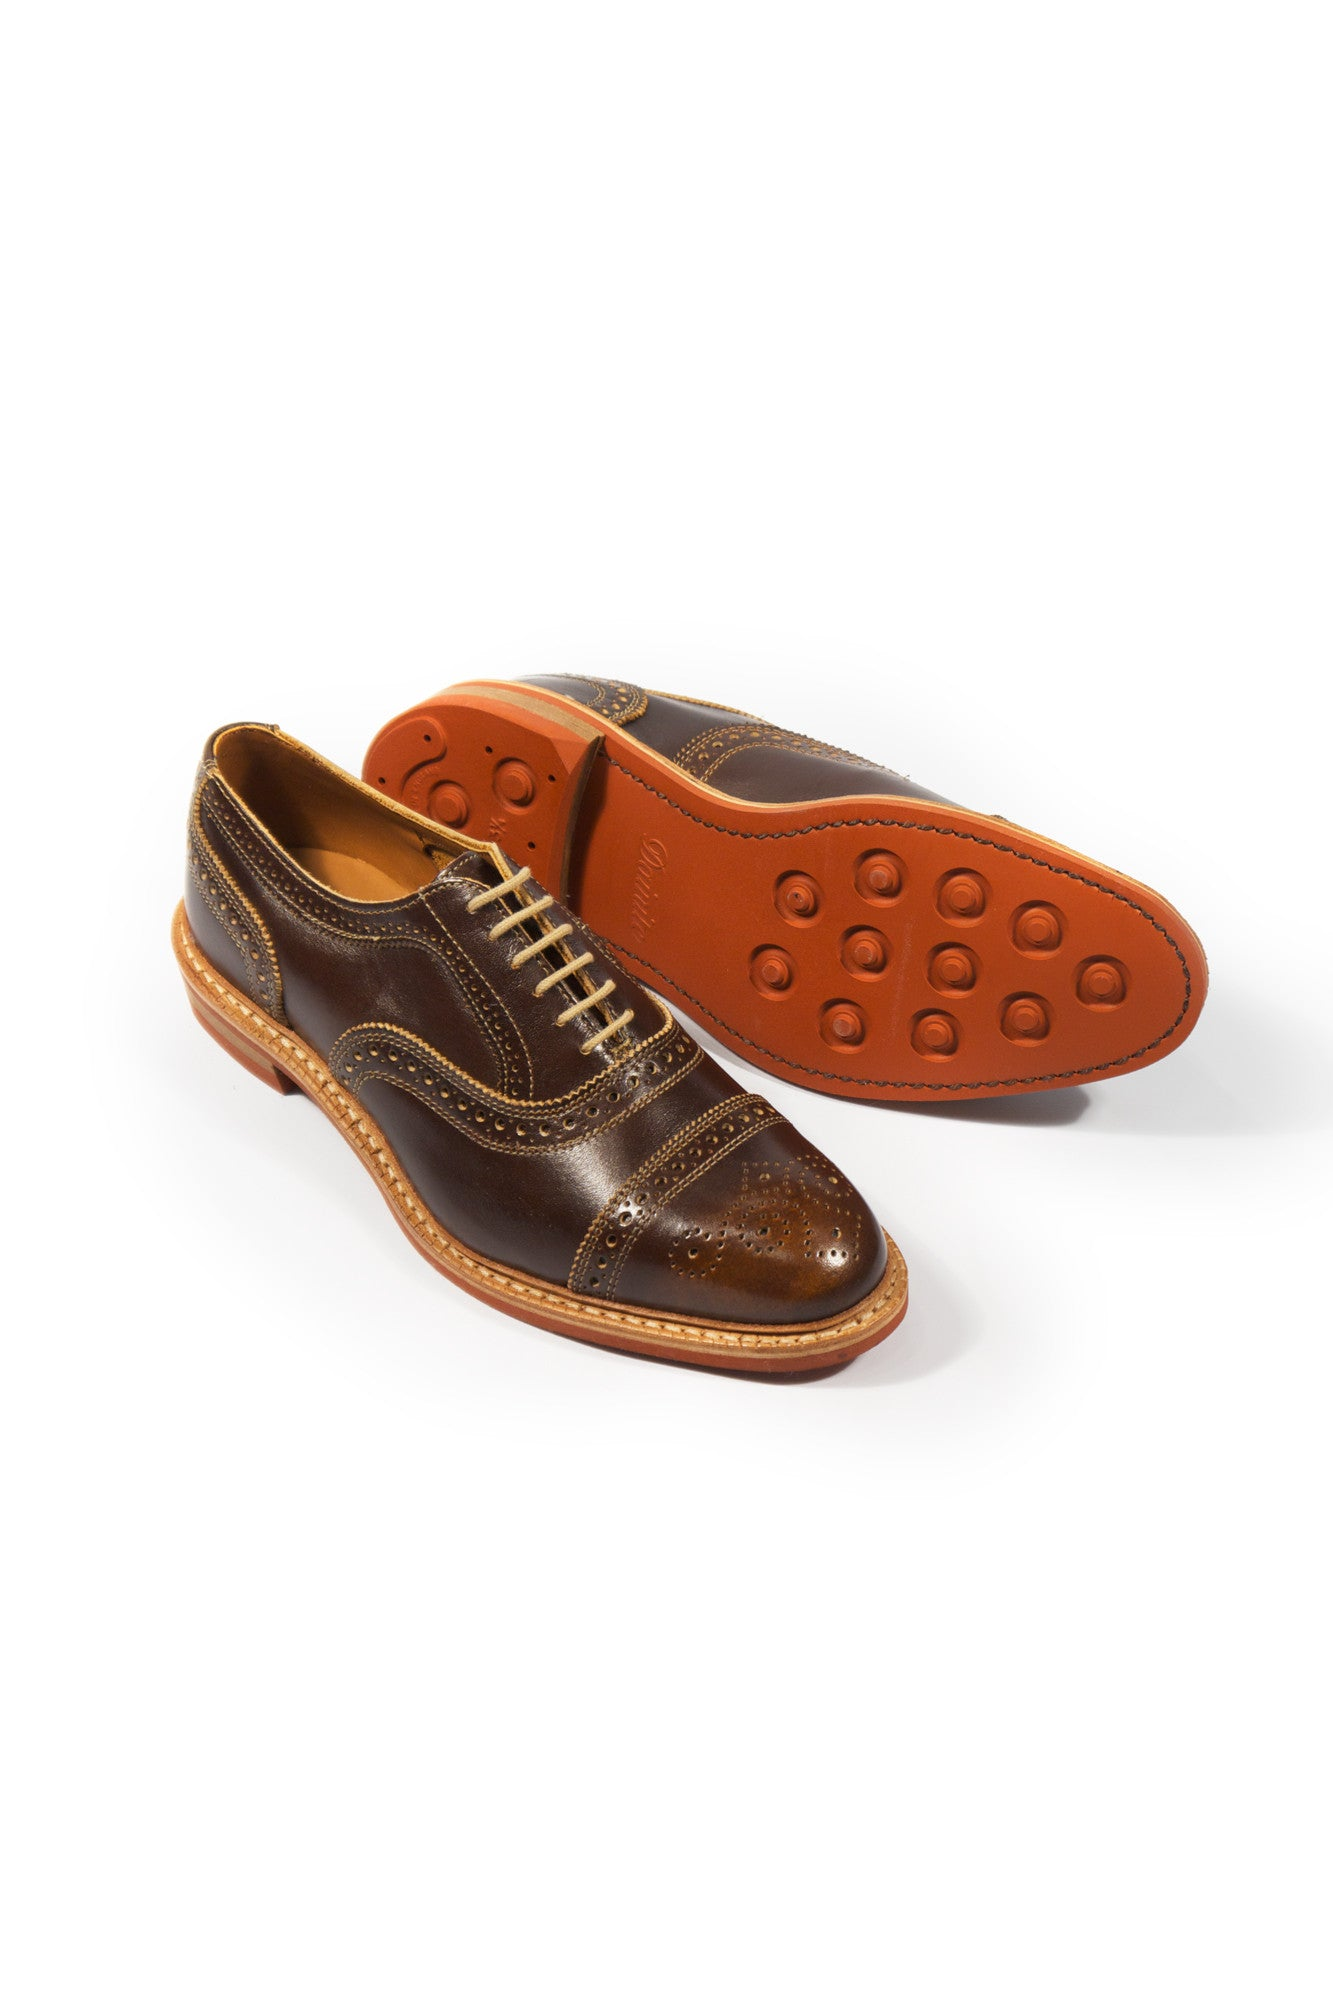 "Allen Edmonds ""Strandmok"" Shoe"